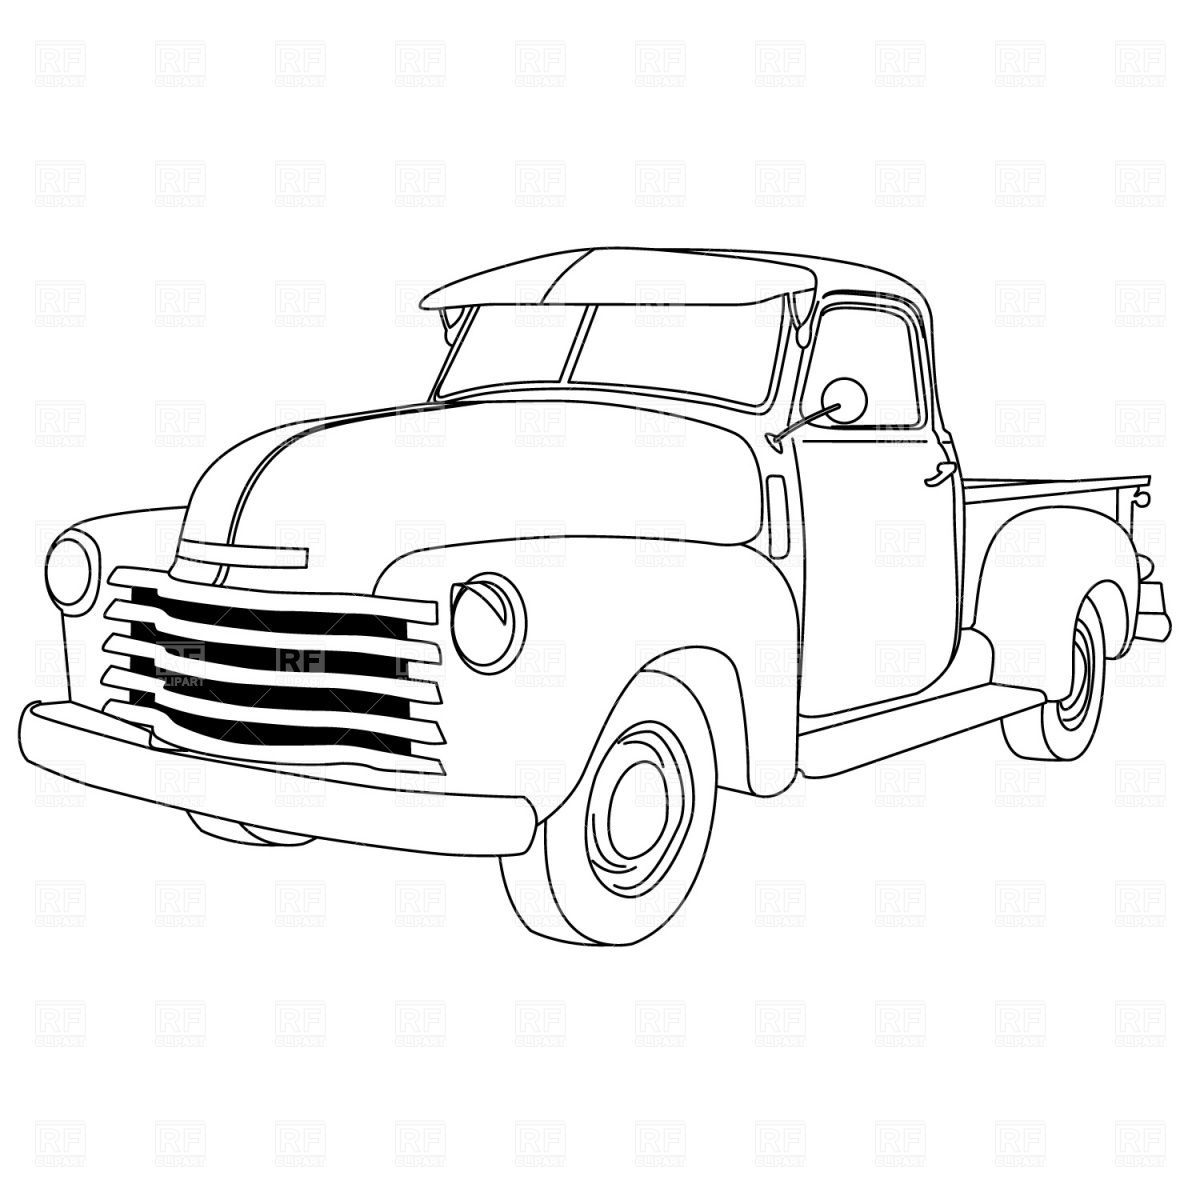 Old ford truck clipart 7 » Clipart Portal.